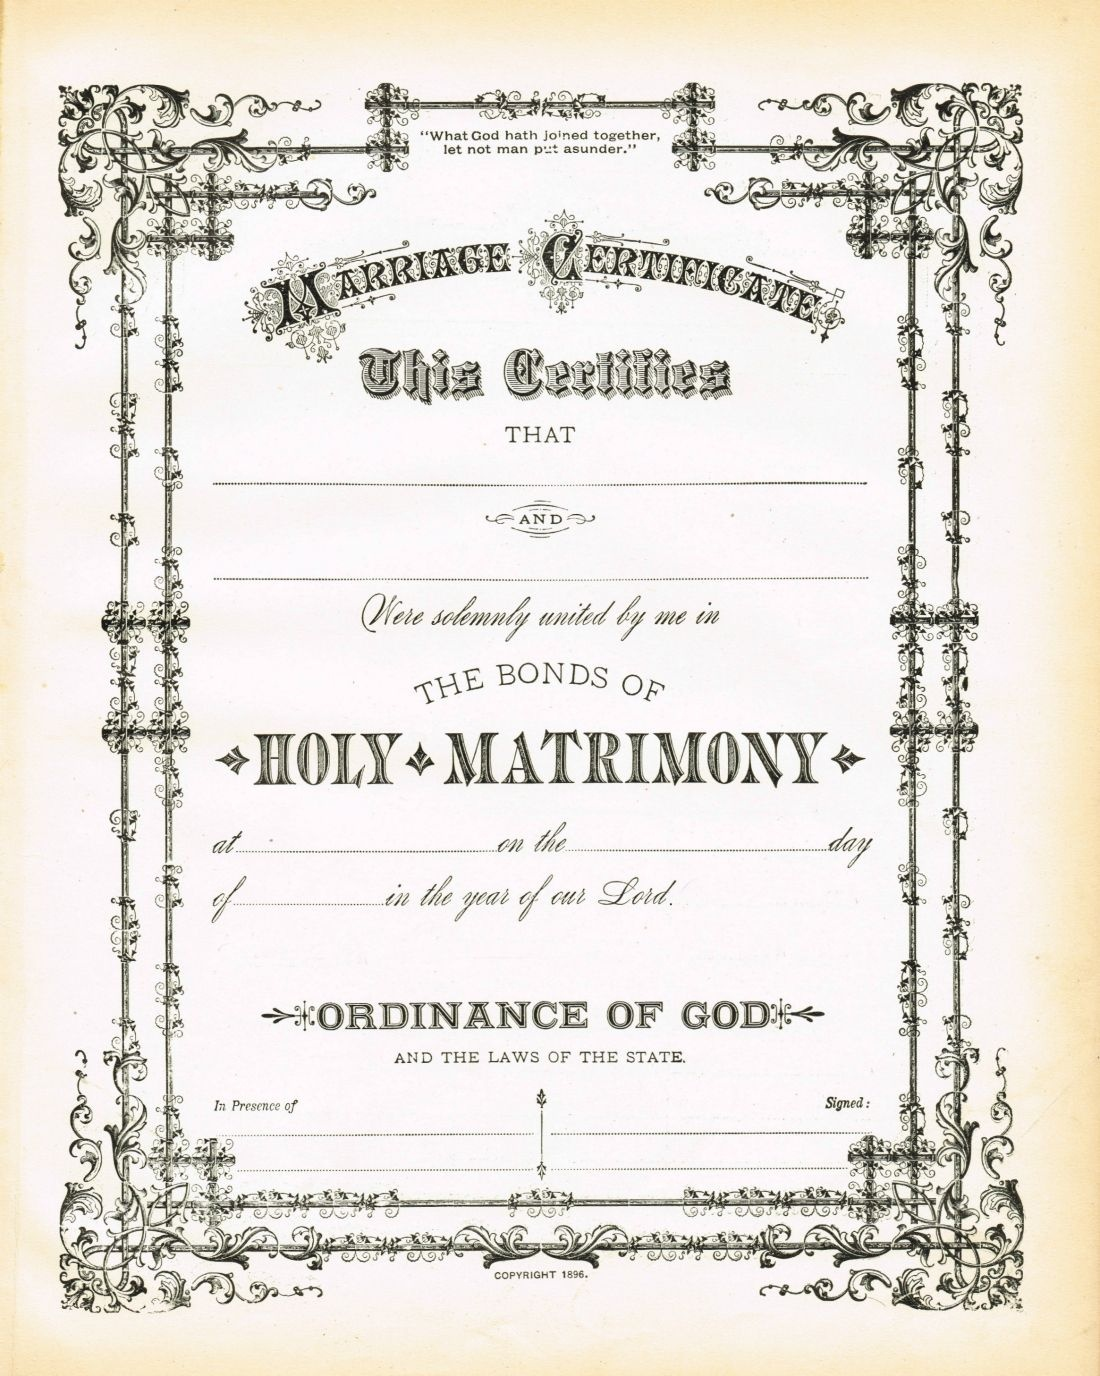 Antique Certificate Of Marriage Printable | English Wedding Project - Fake Marriage Certificate Printable Free